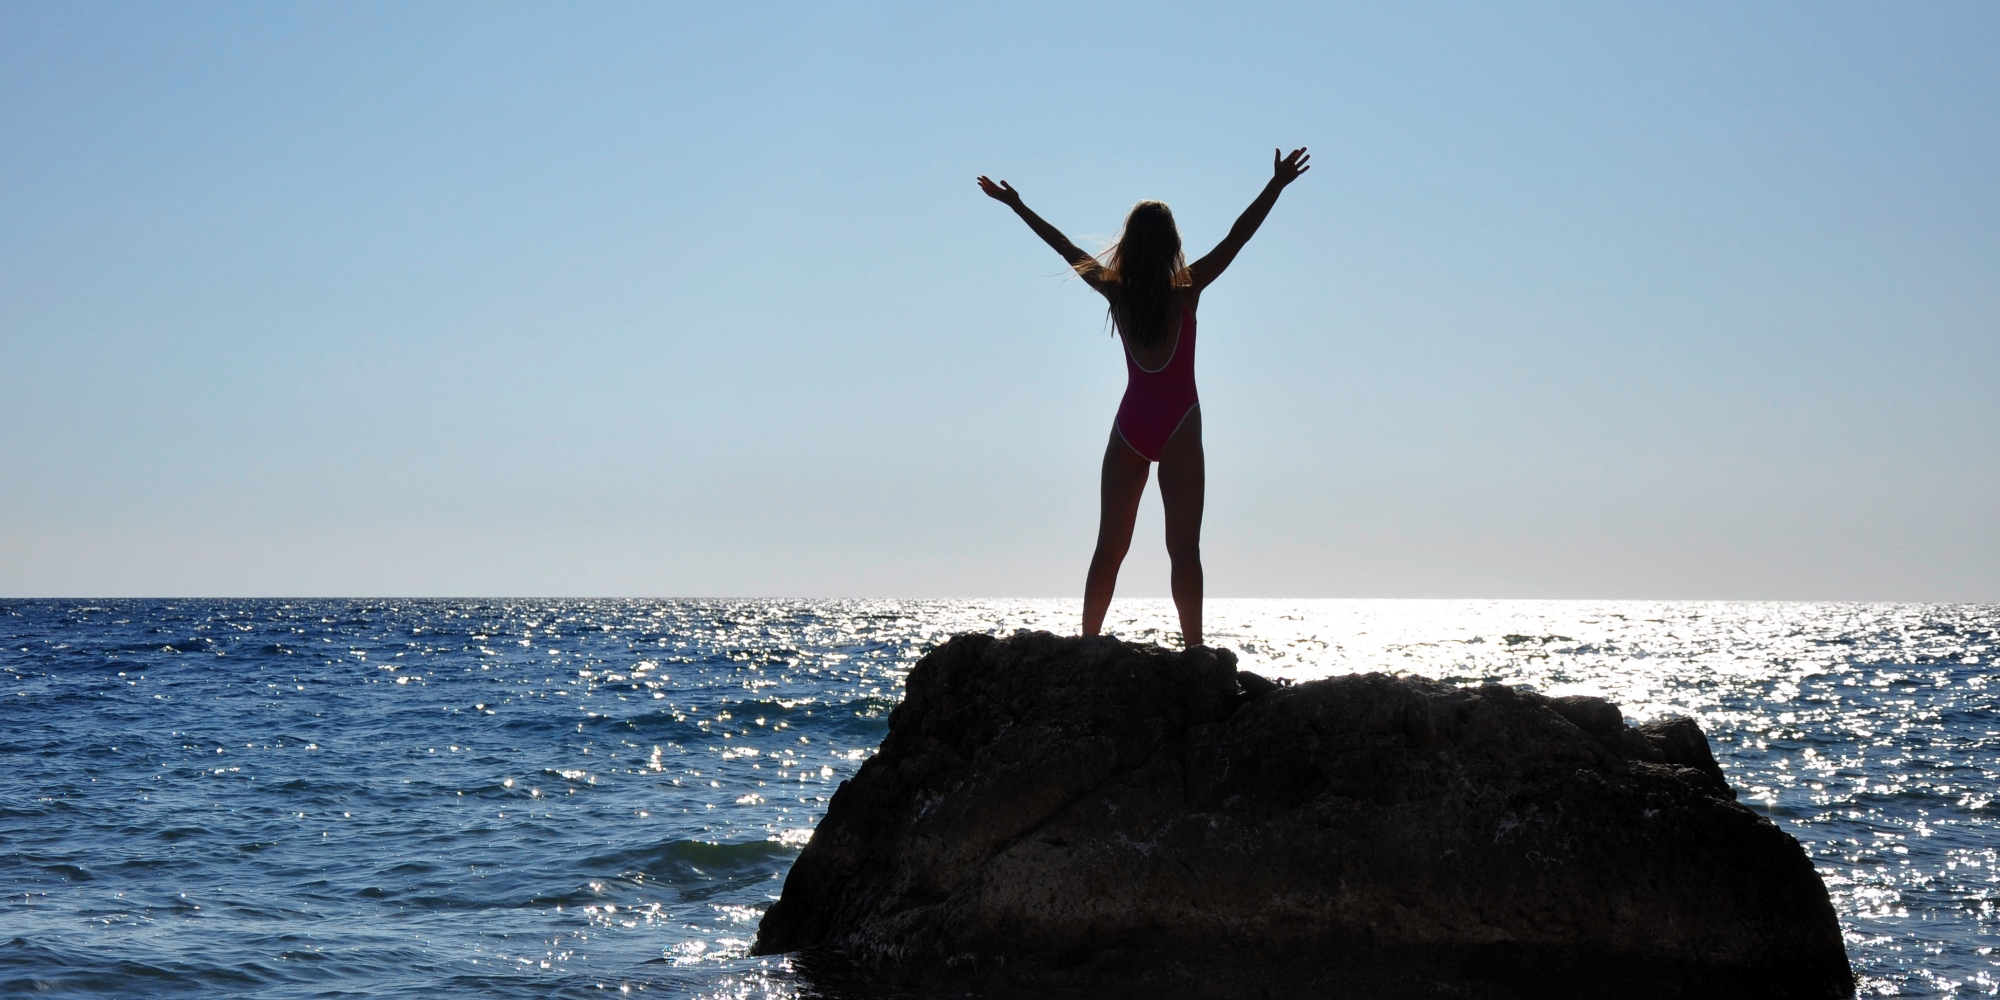 A woman standing on a reef, stretching herself towards the sky.